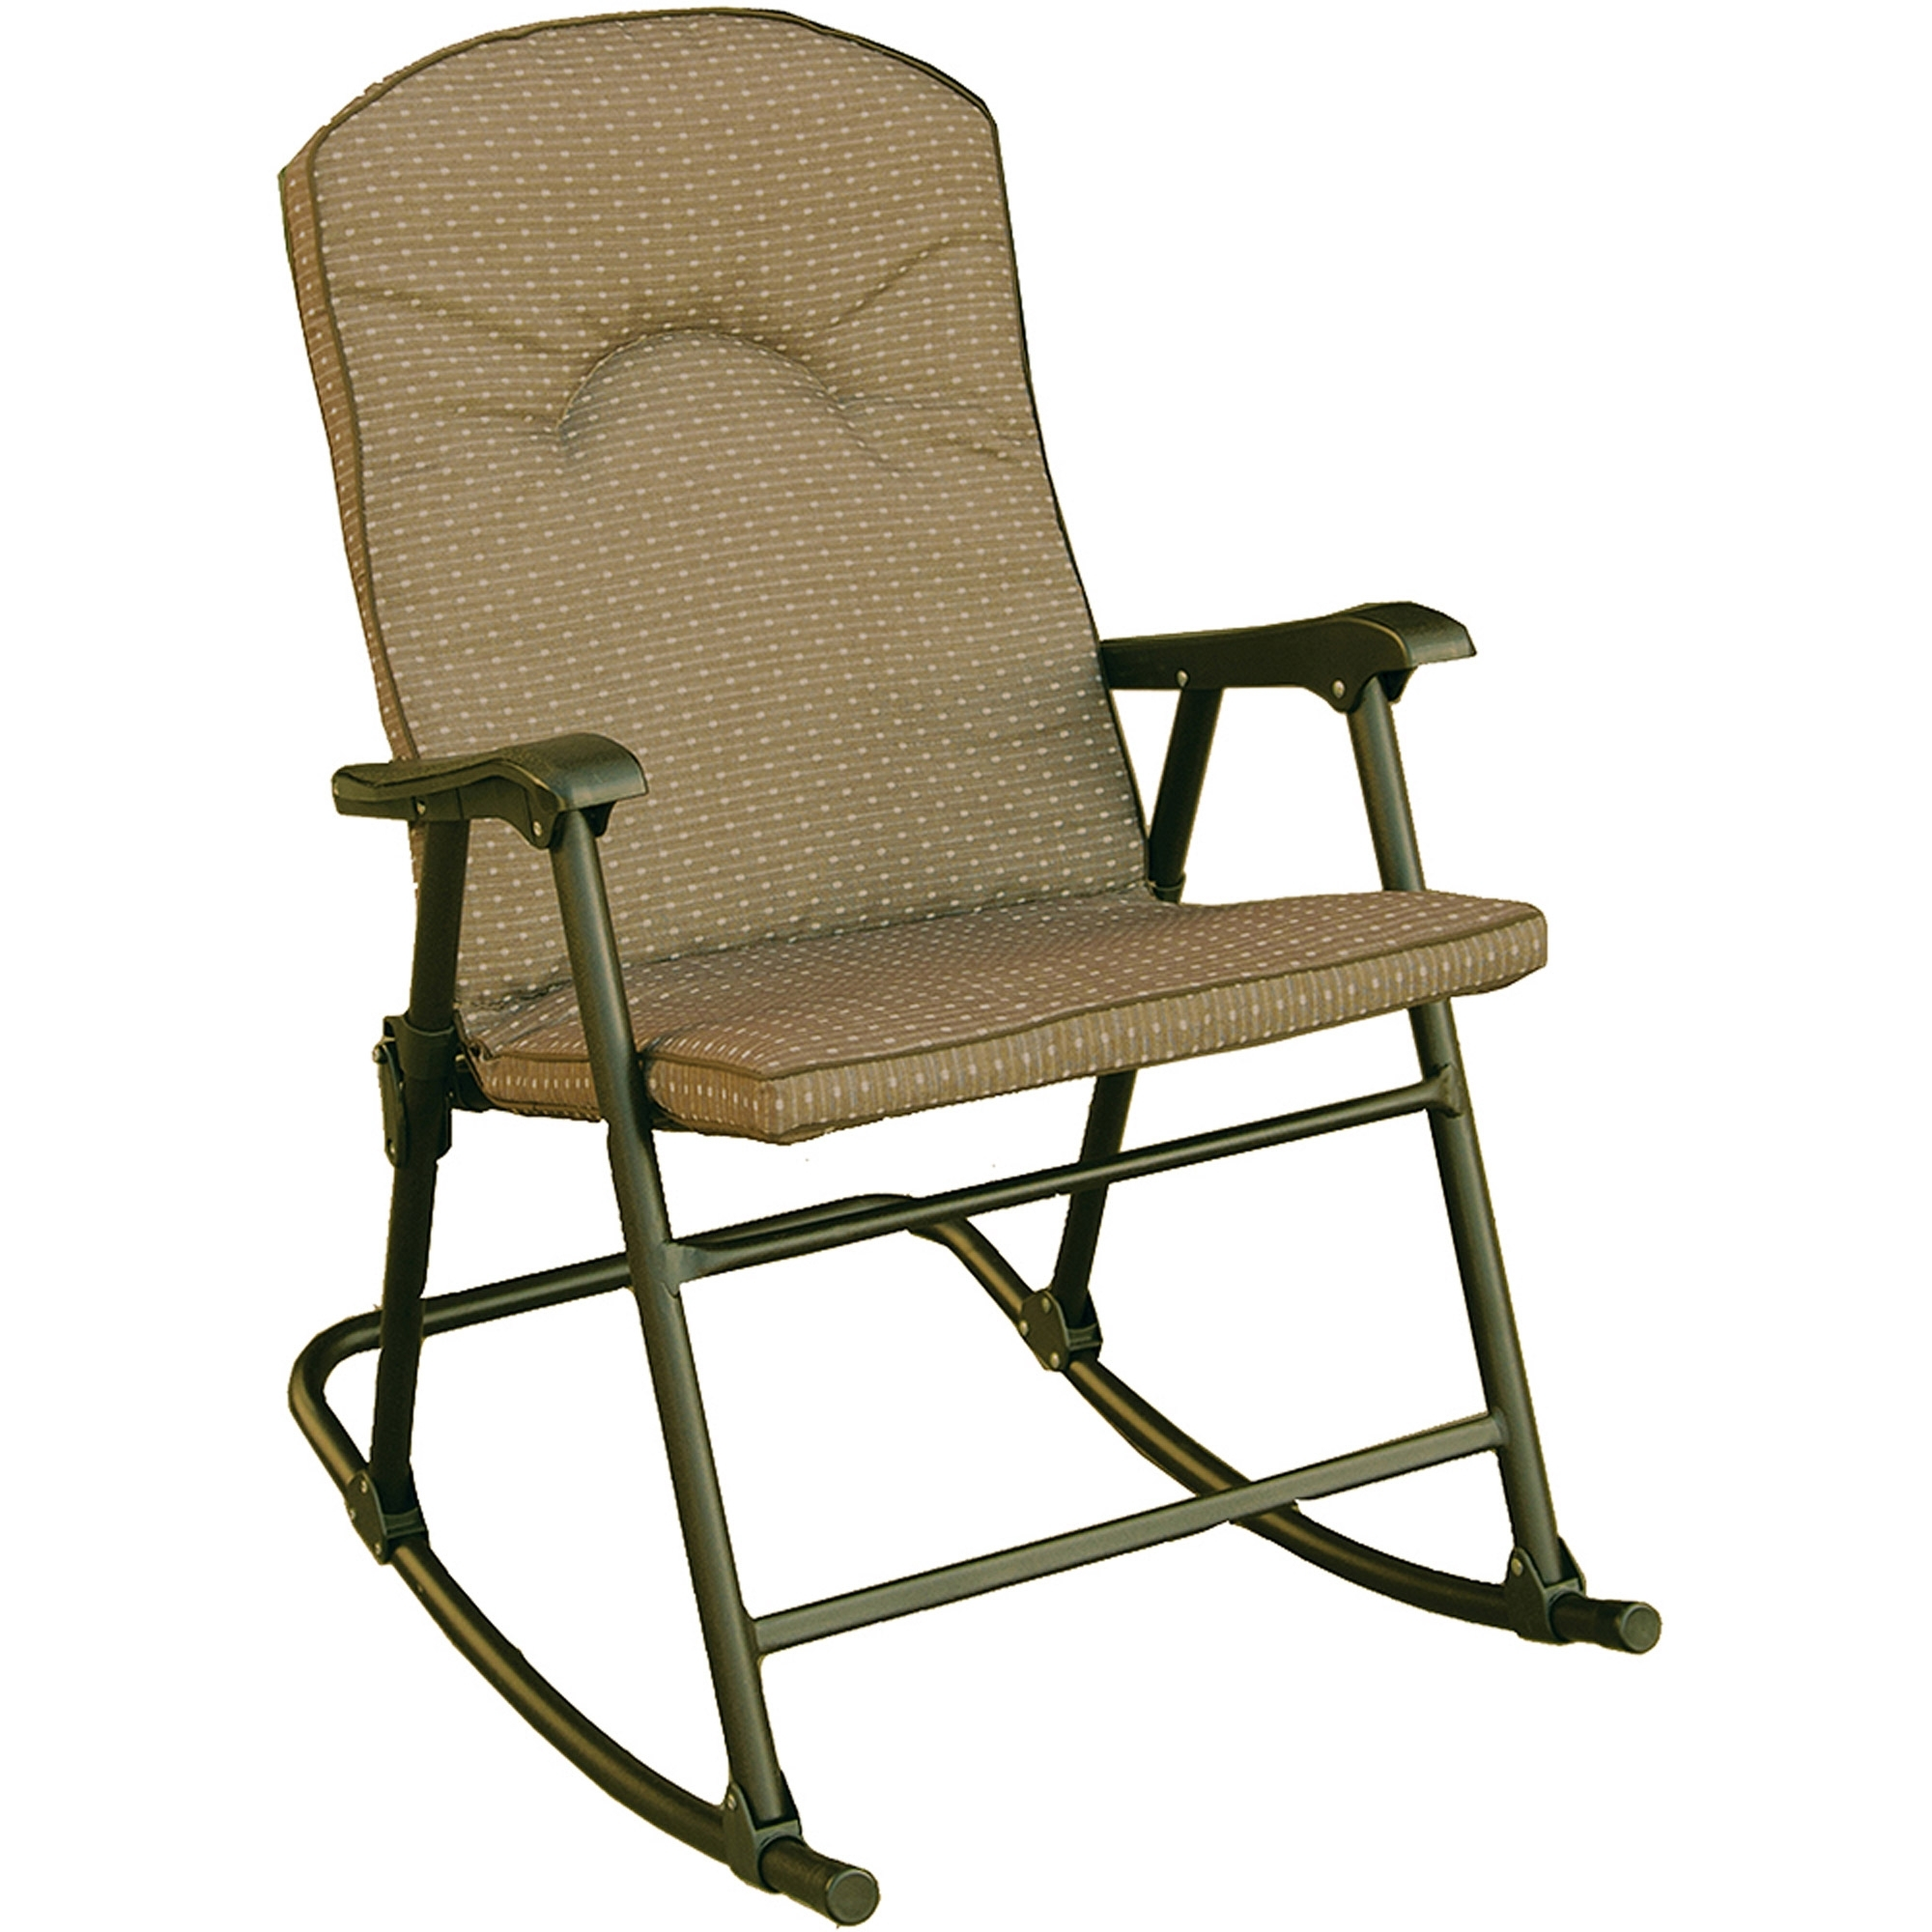 Prime Products Cambria Padded Rocker, Desert Taupe, 13 6805 Intended For Padded Patio Rocking Chairs (#14 of 15)